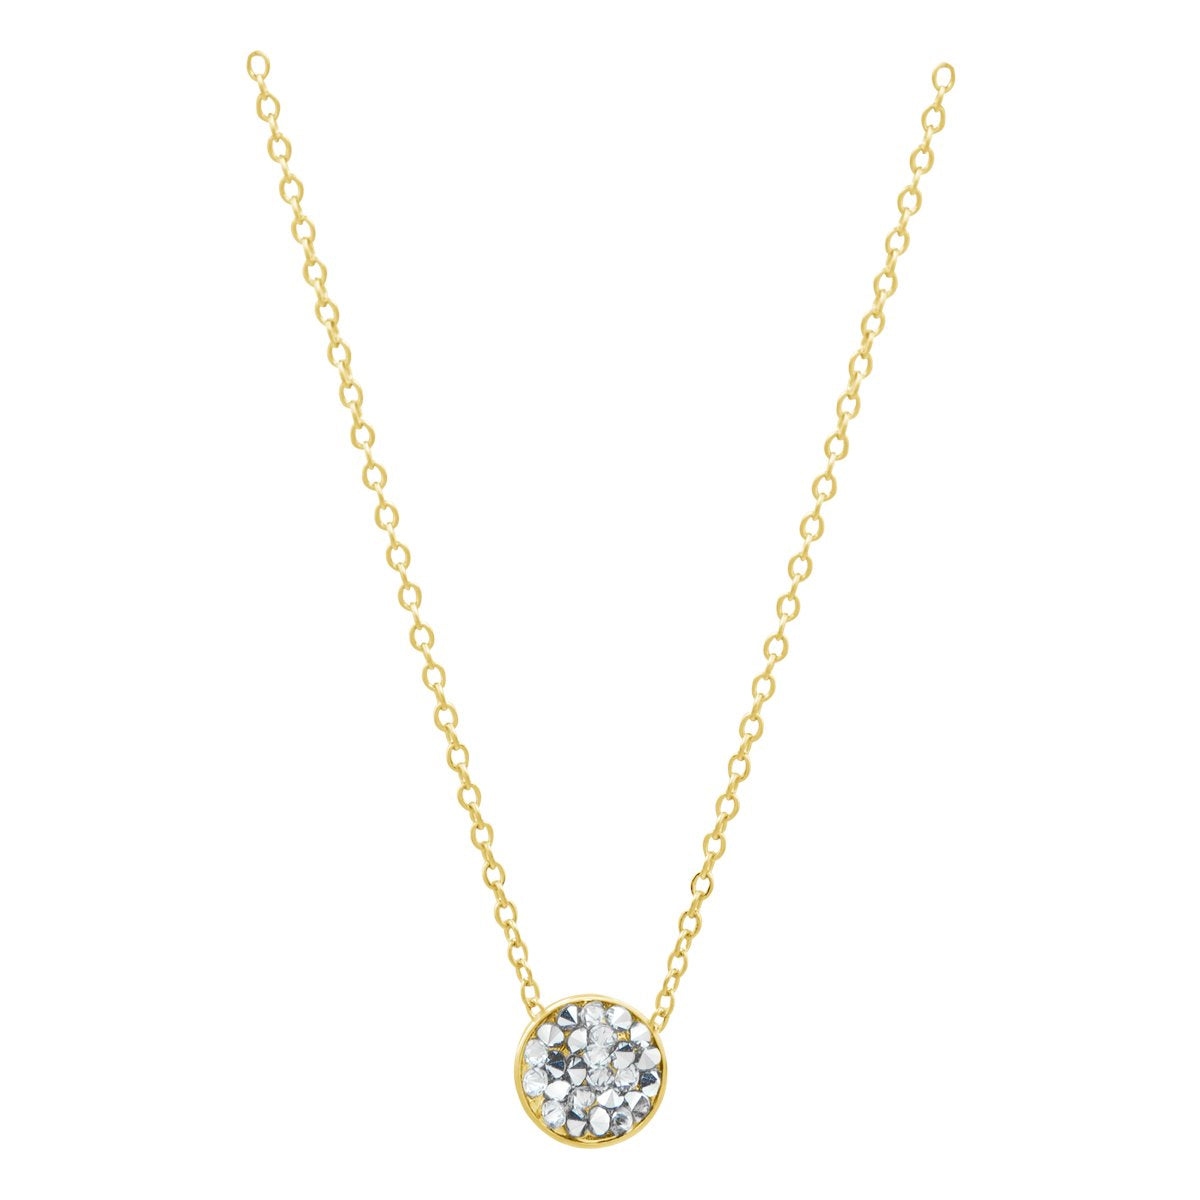 DORADO PETITE SLIDER NECKLACE GOLD CAL